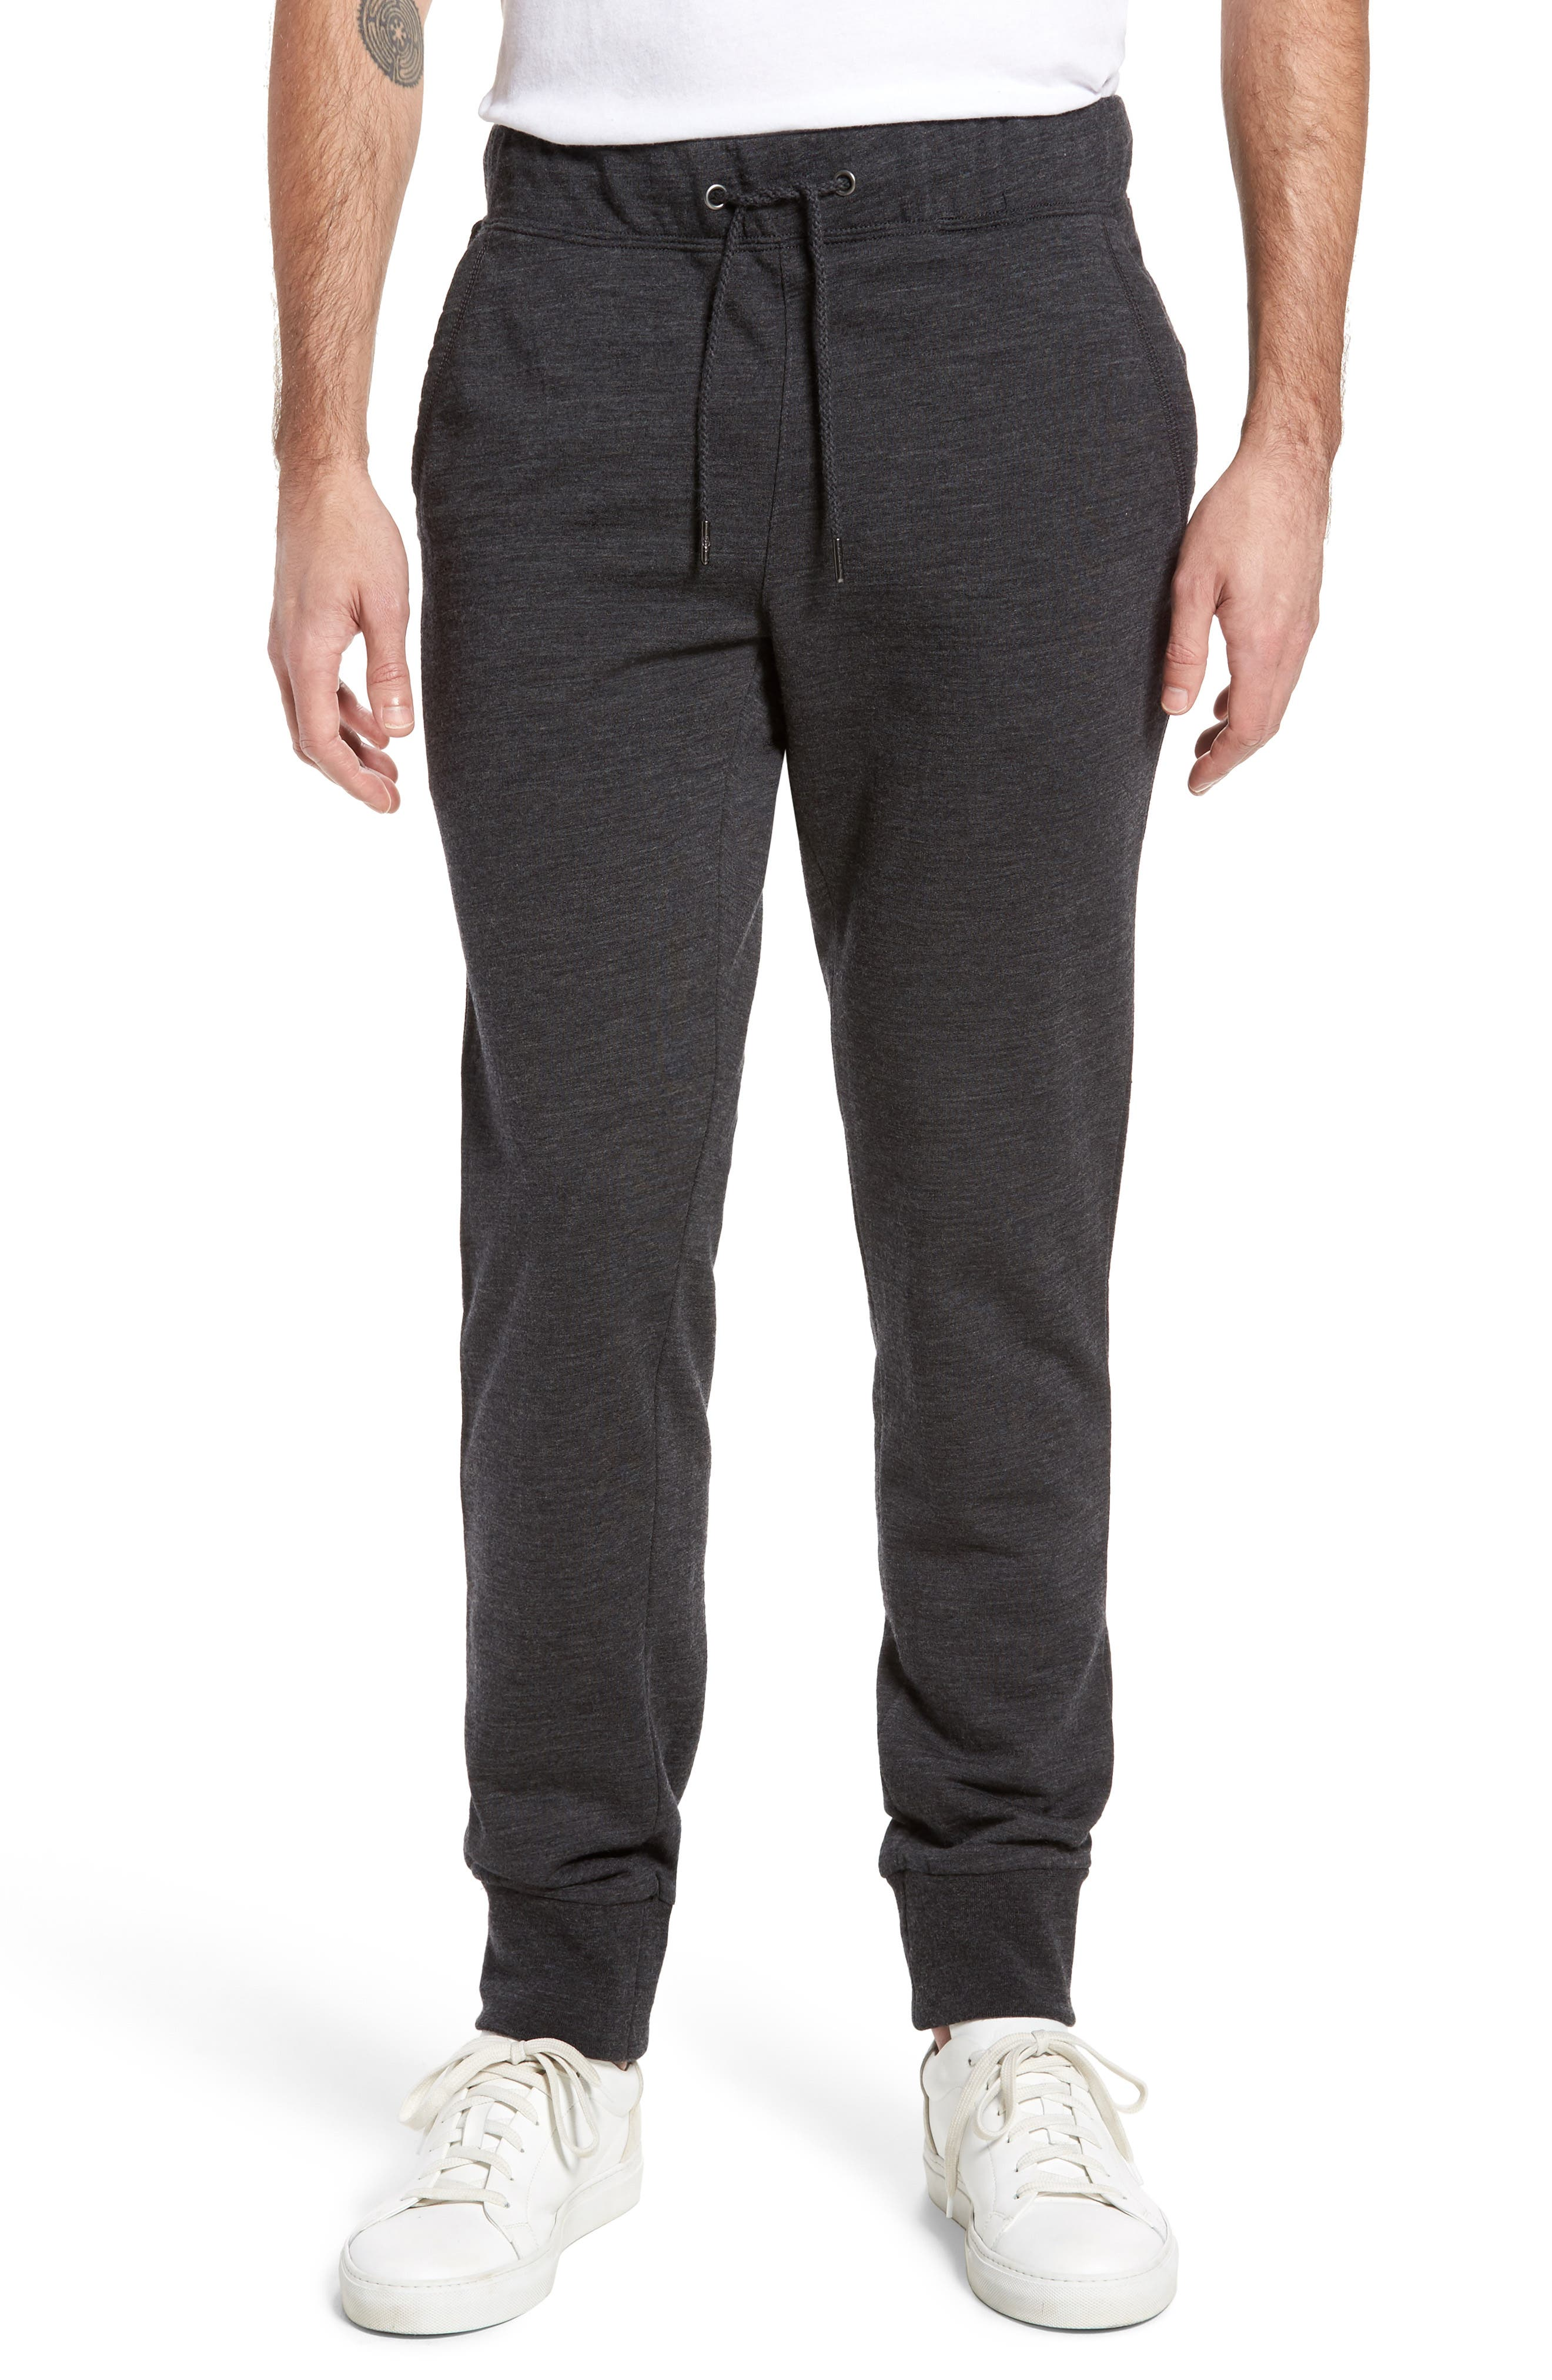 Merino Wool Fleece Jogger Pants,                             Main thumbnail 1, color,